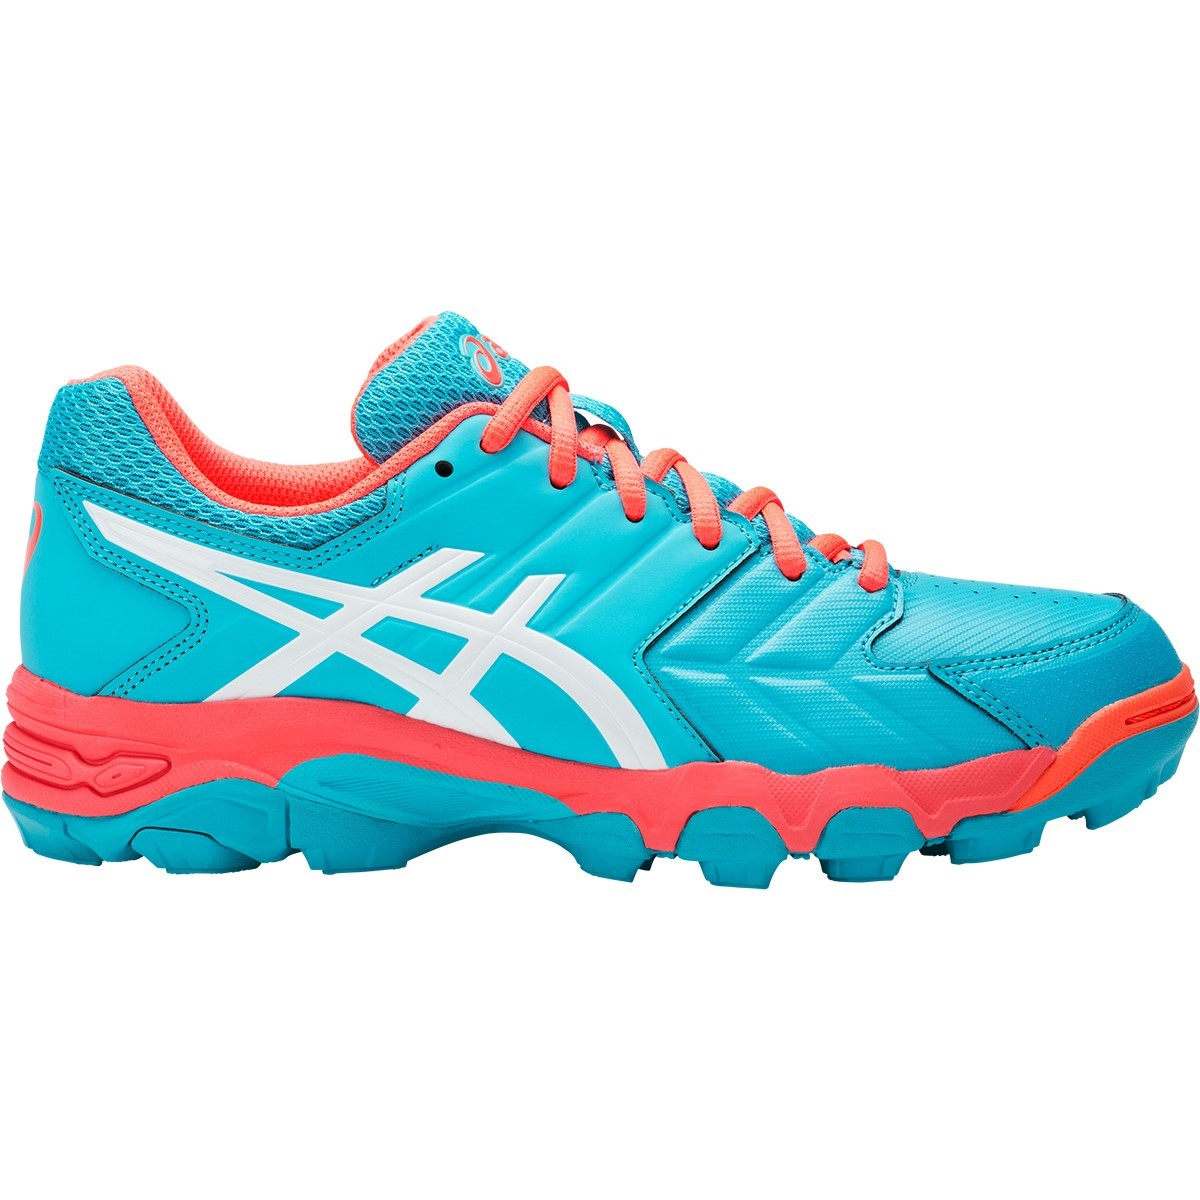 5988f75ca20 Asics Gel Blackheath 6 - Womens Hockey Shoes - Aquarium/White/Flash Coral